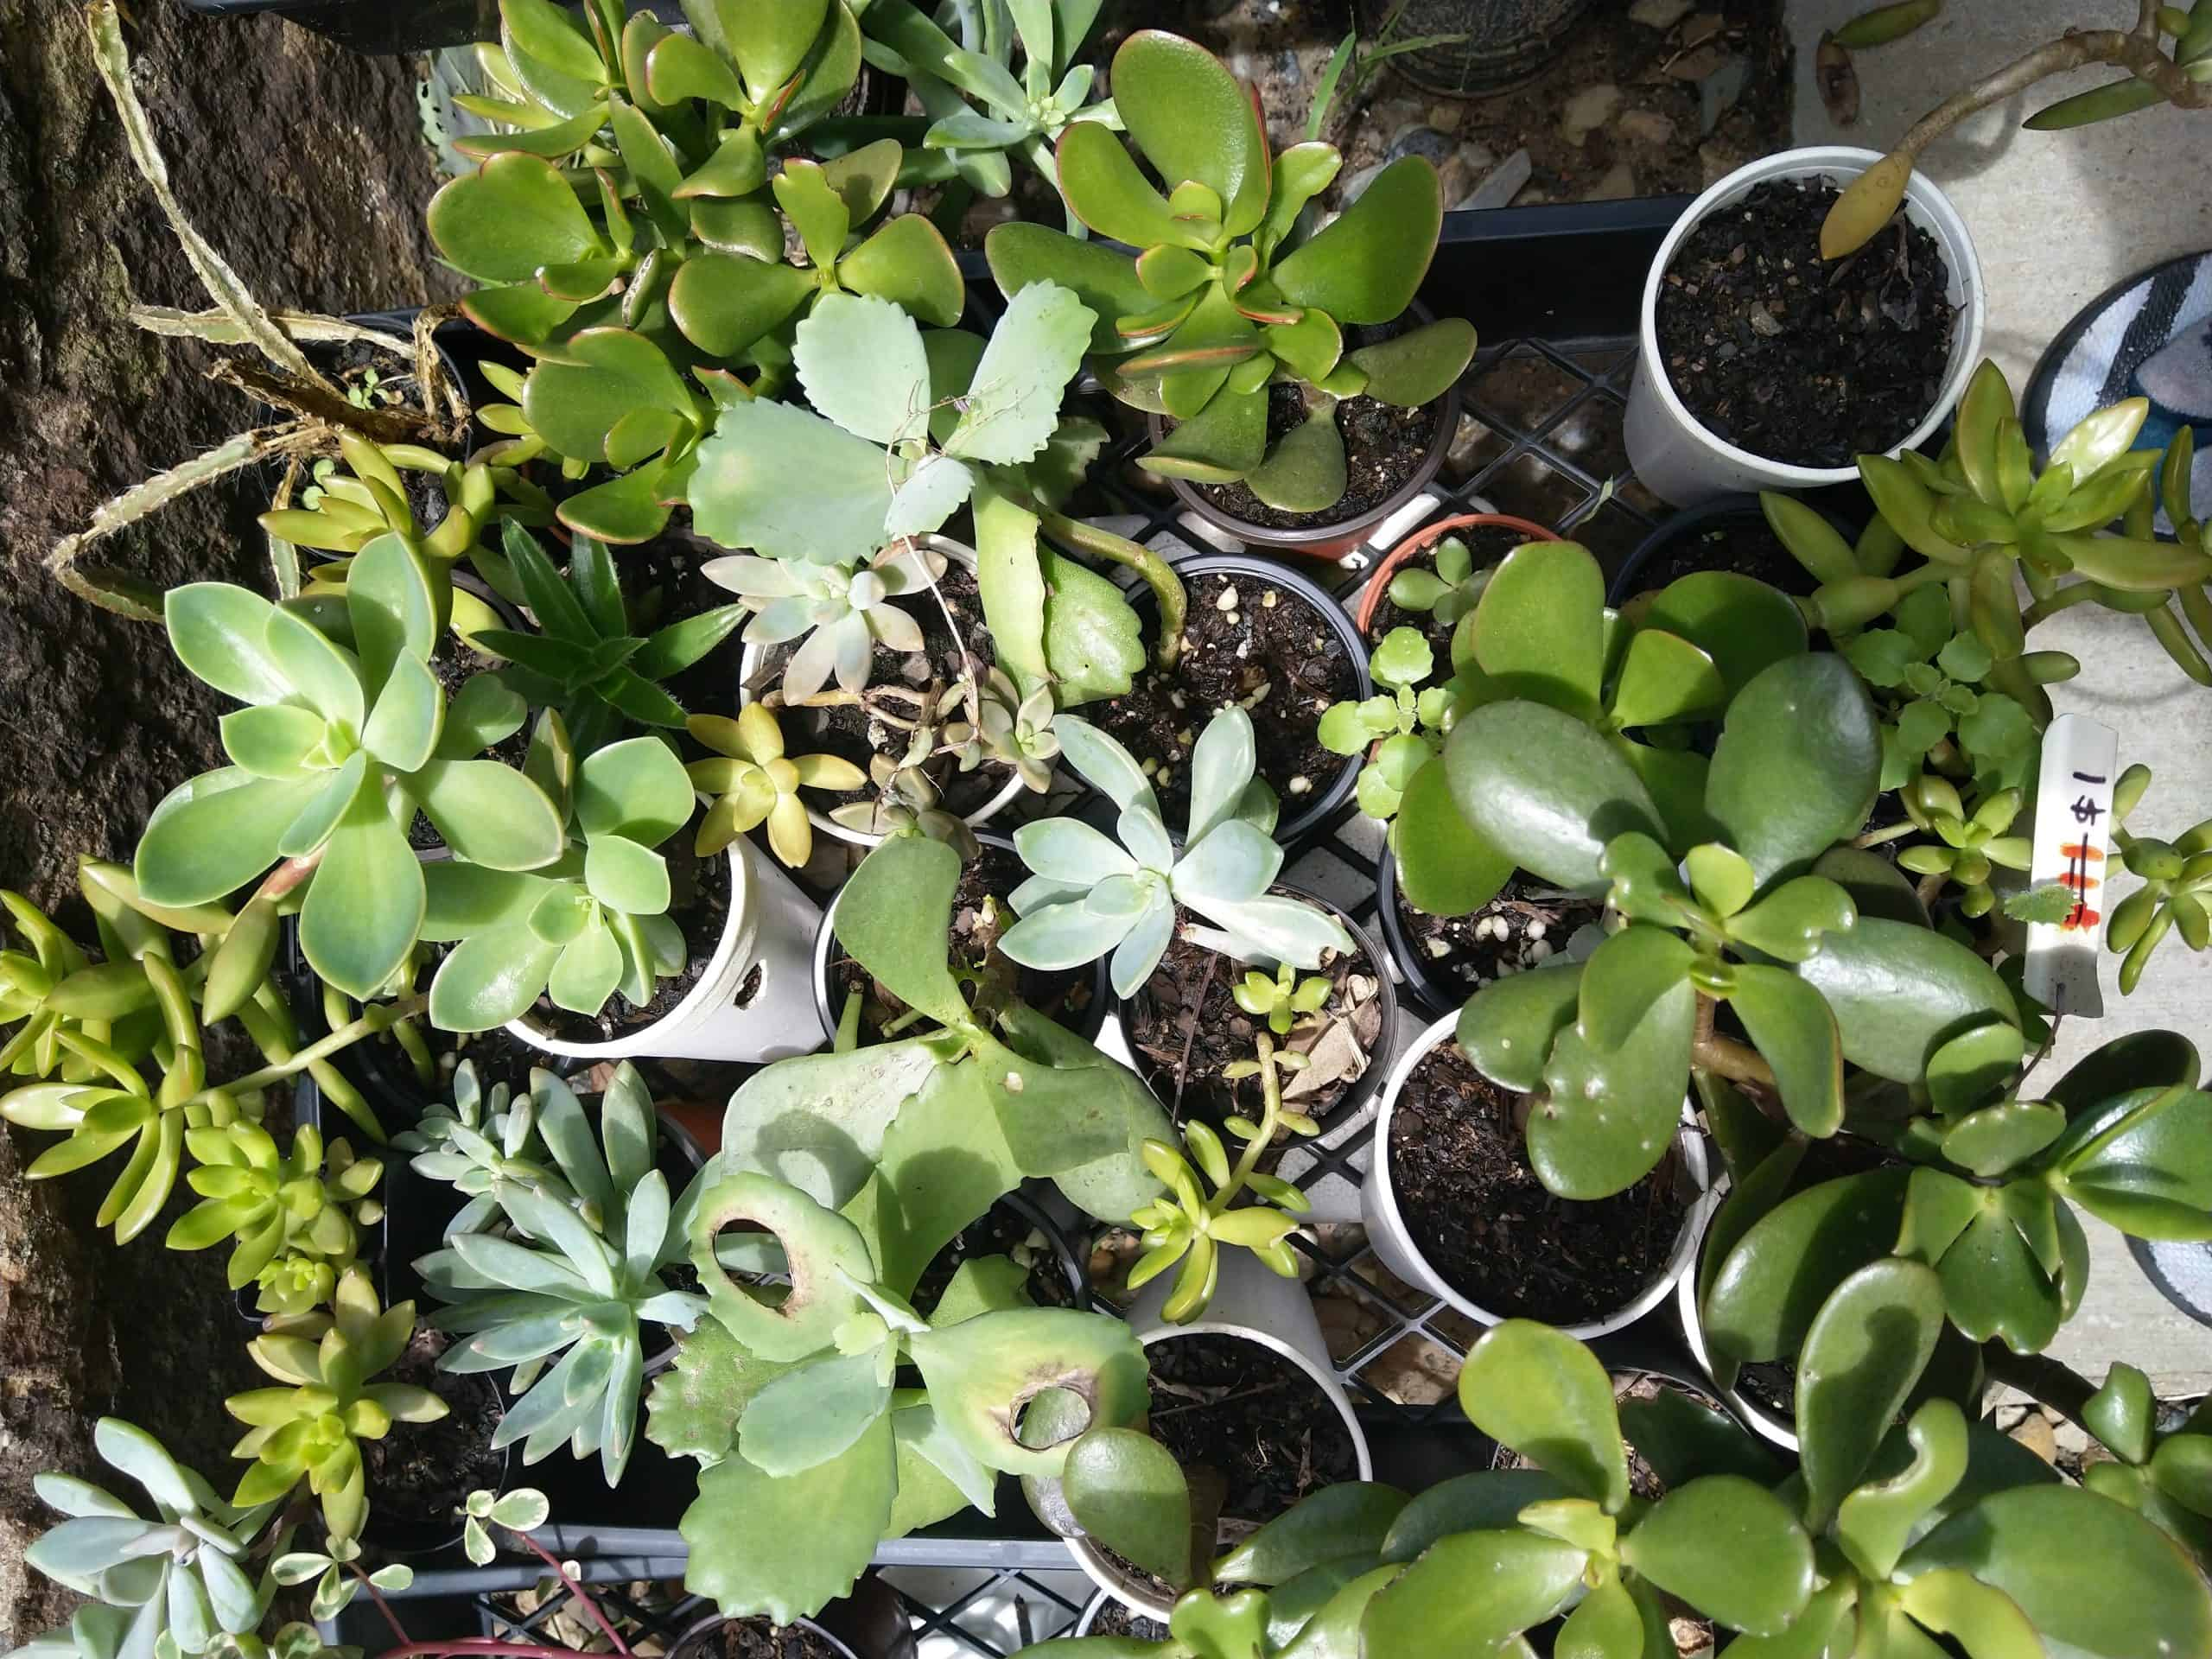 Limited Succulent stock - Only Four trays